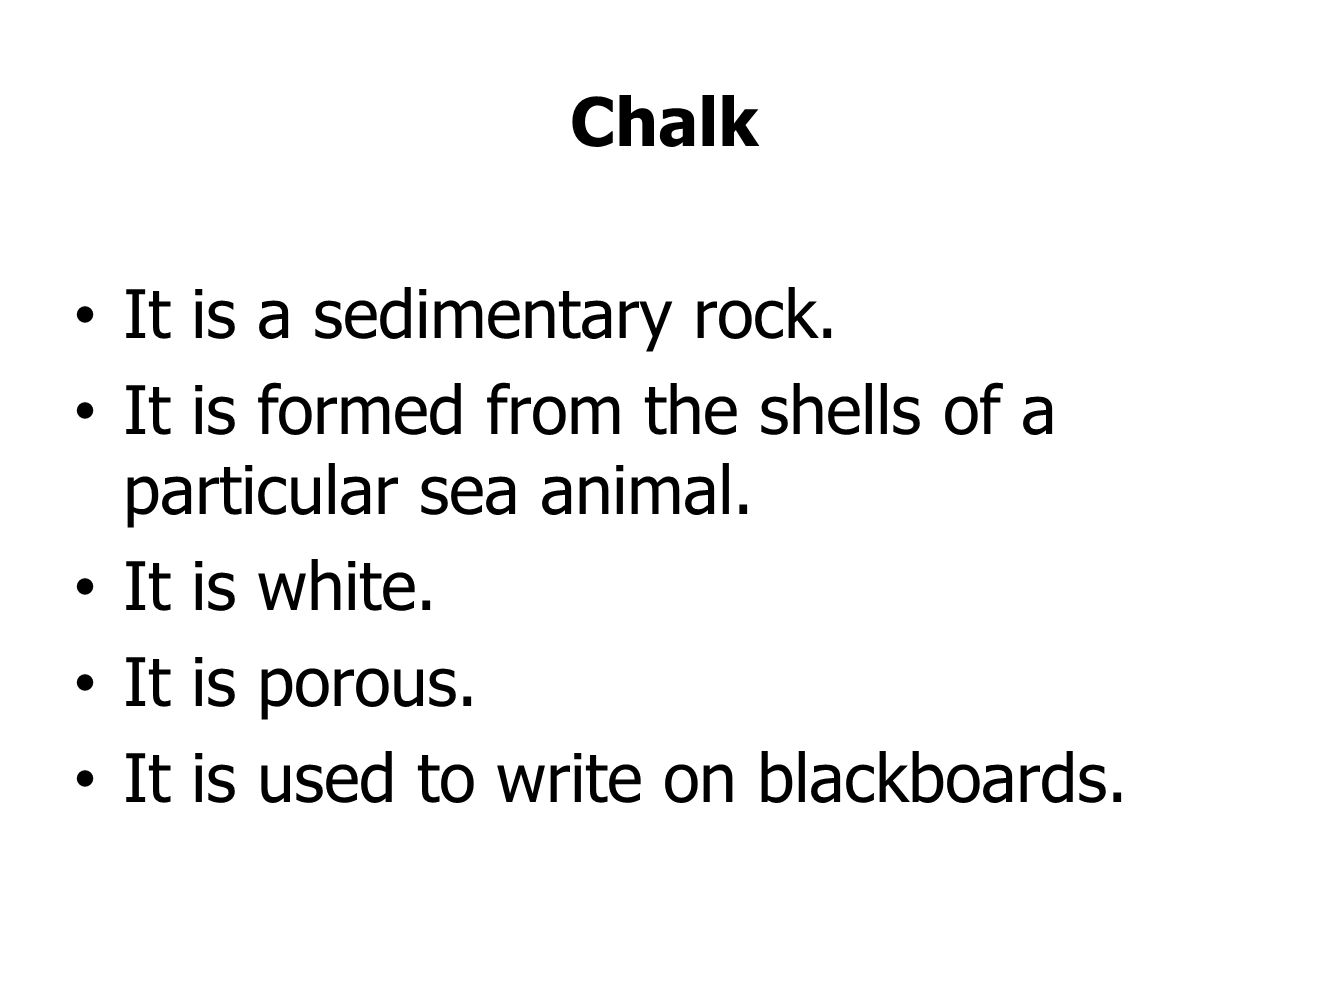 Chalk It is a sedimentary rock. It is formed from the shells of a particular sea animal. It is white.